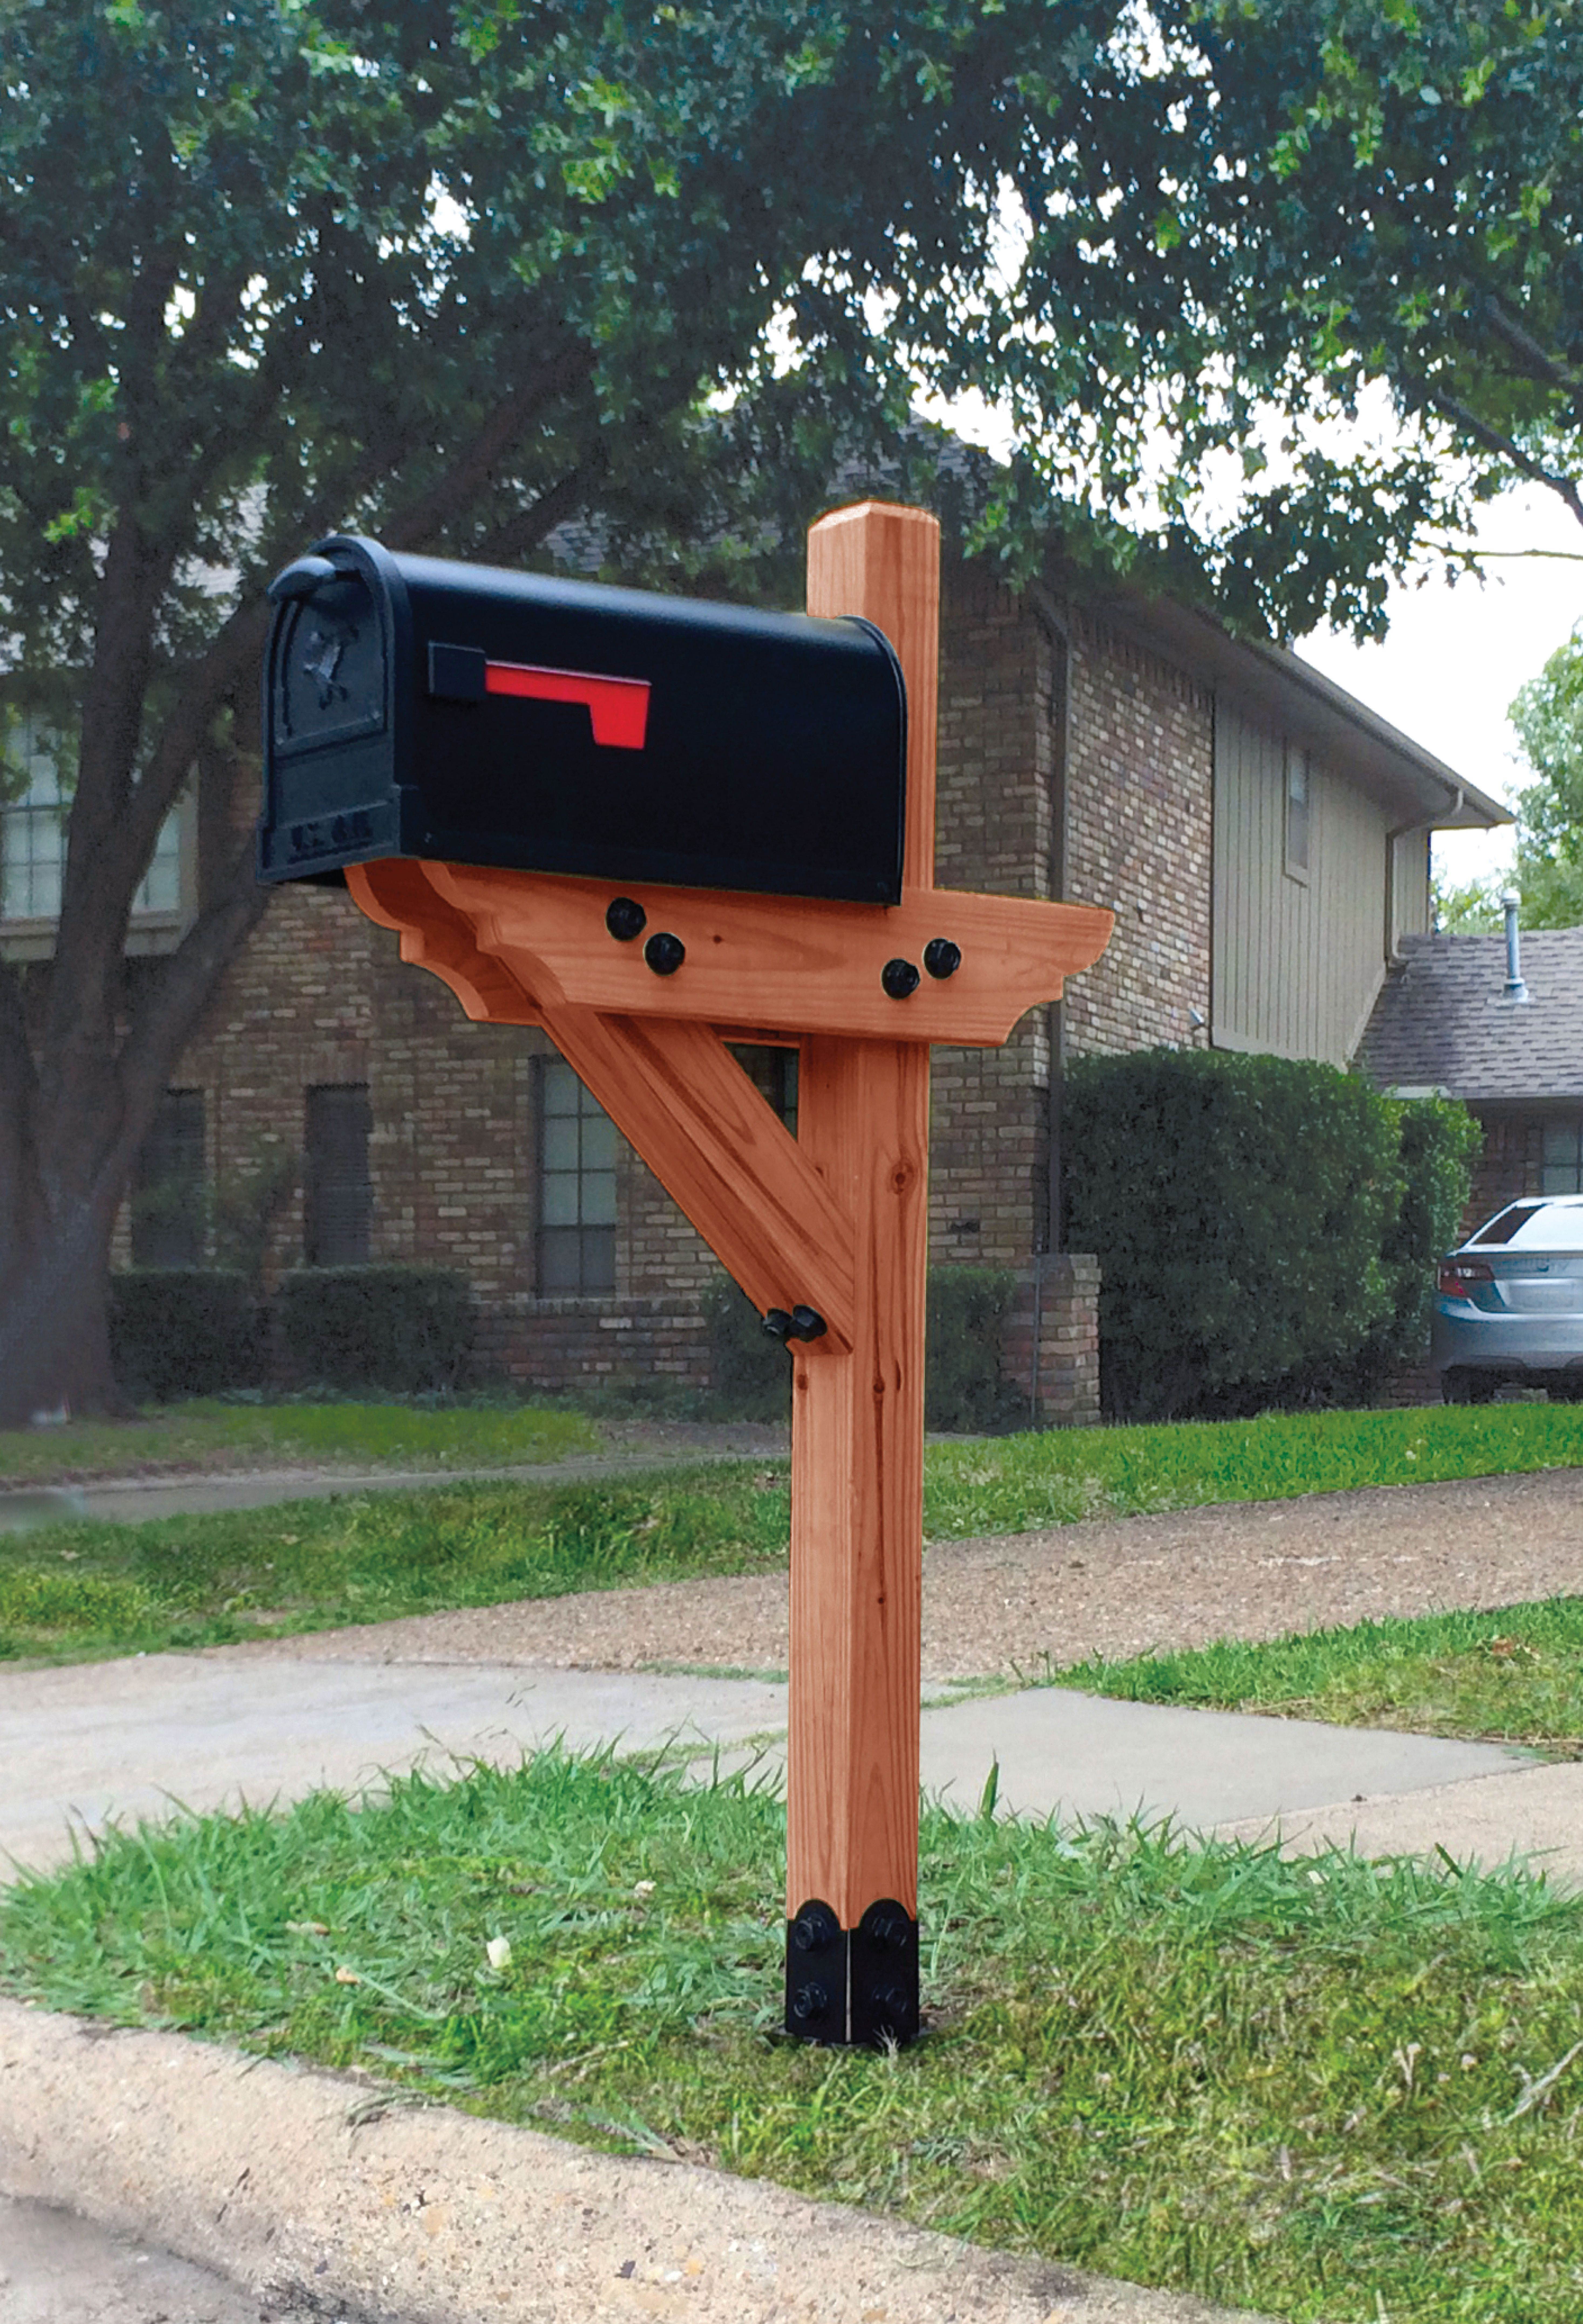 Dress Your Mailbox Up In Style With This Wood Mailbox Post Mailboxlandscape Mailboxlandscaping With Images Diy Mailbox Mailbox Design Mailbox Landscaping